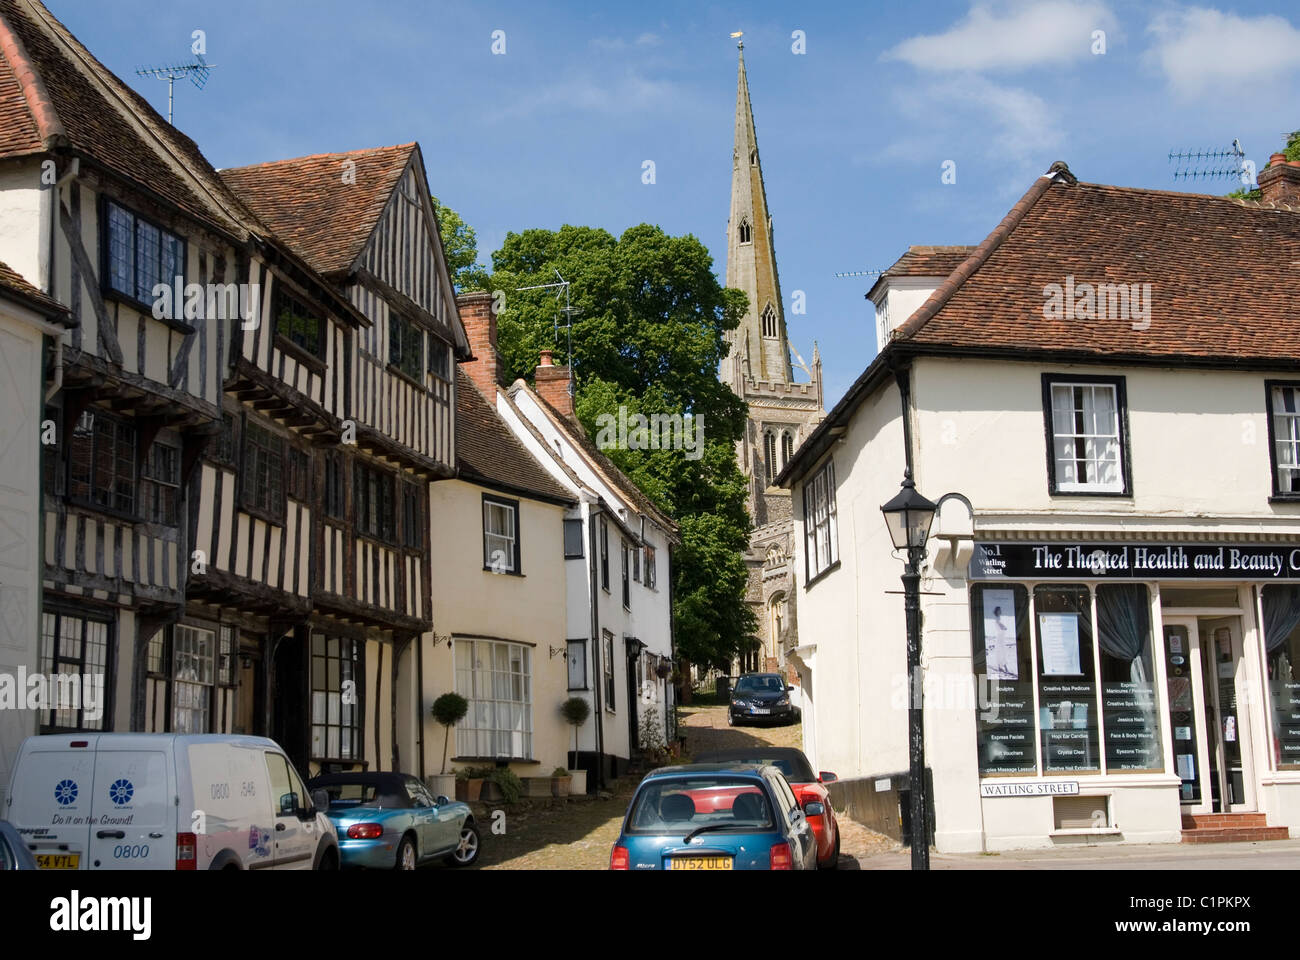 England, Thaxted, half-timbered building and church spire - Stock Image